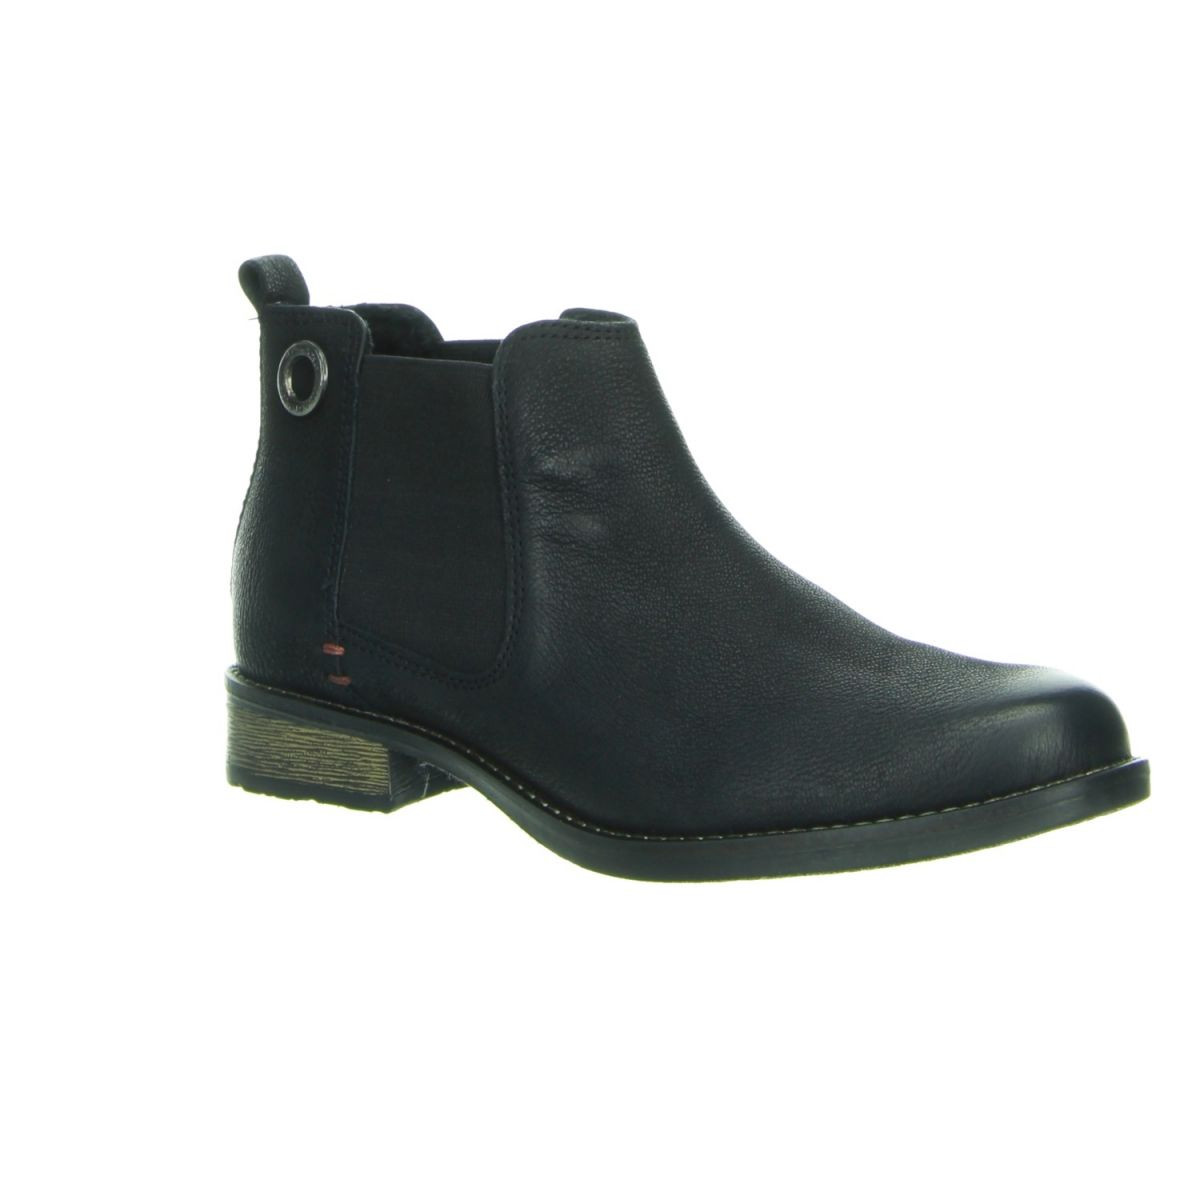 89e589542d85 S.Oliver Chelsea-Boot Schwarz   my look   Pinterest   Chelsea and ...